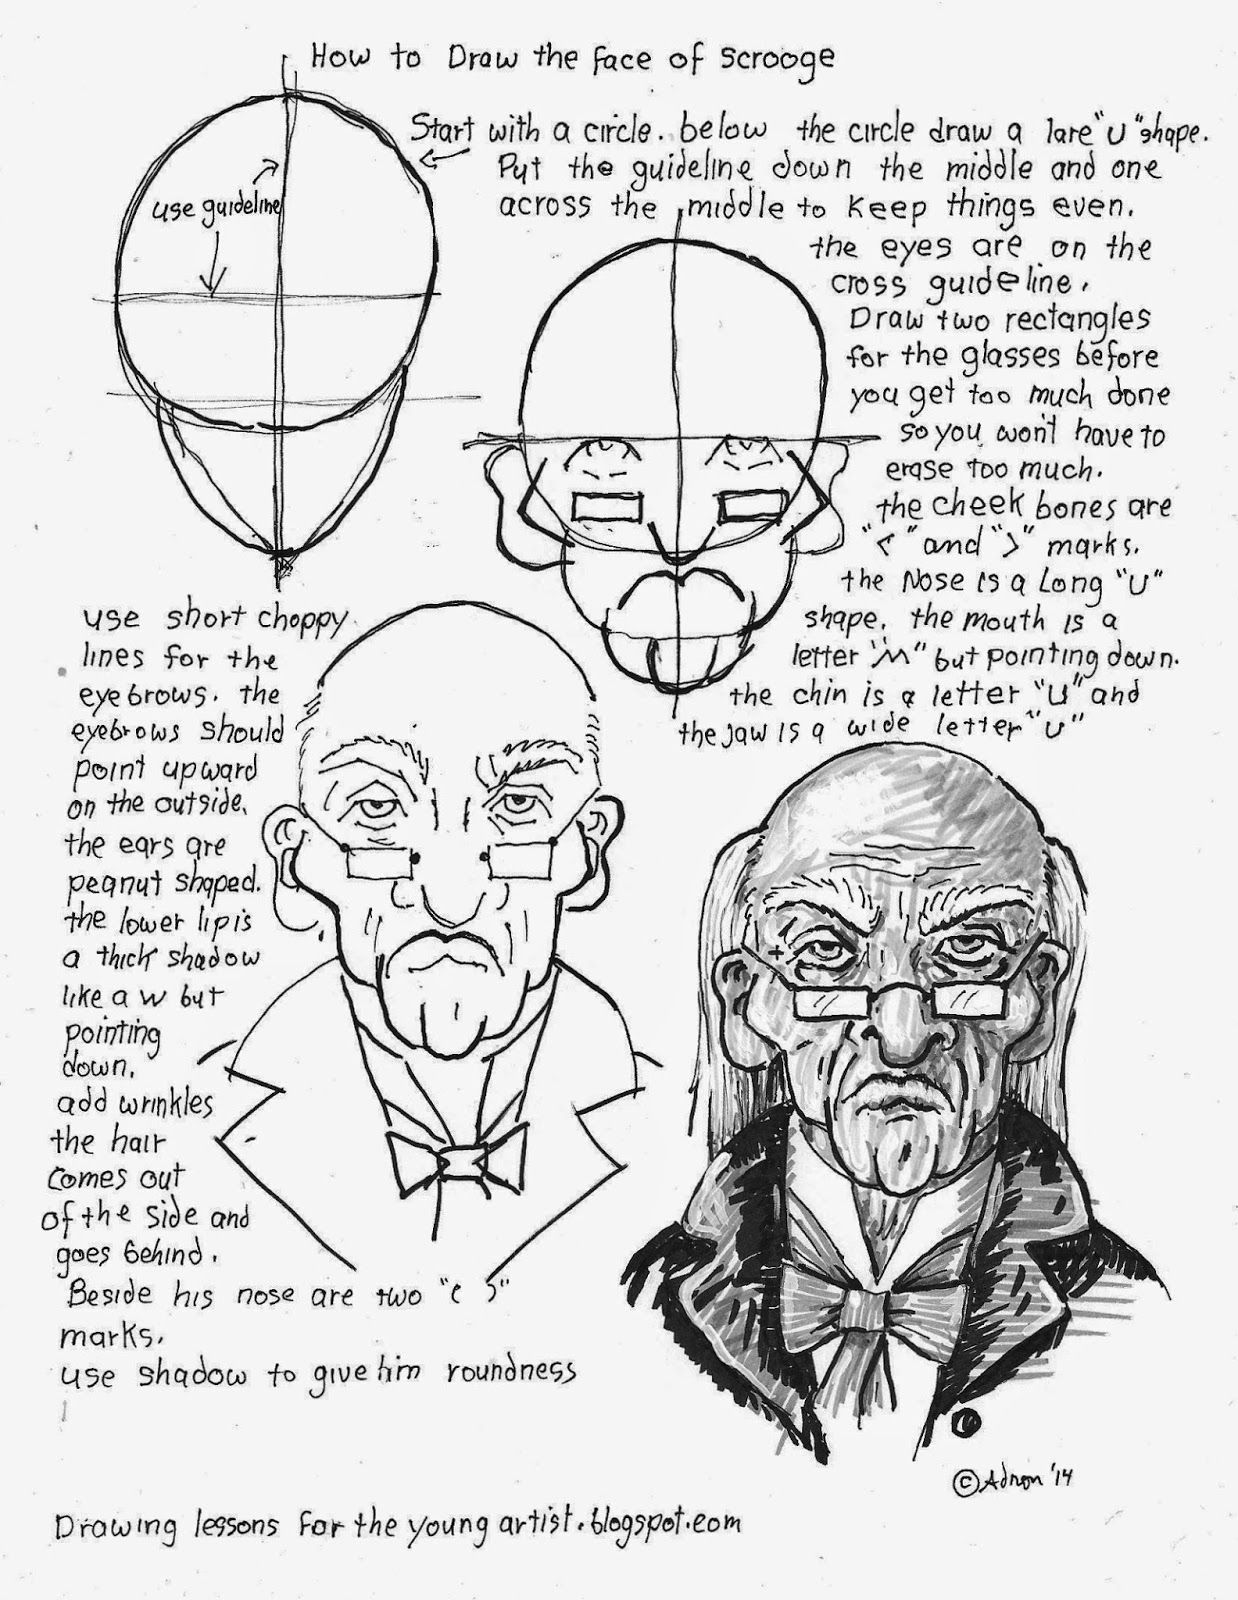 How To Draw The Face Of Scrooge Free Printable Worksheet